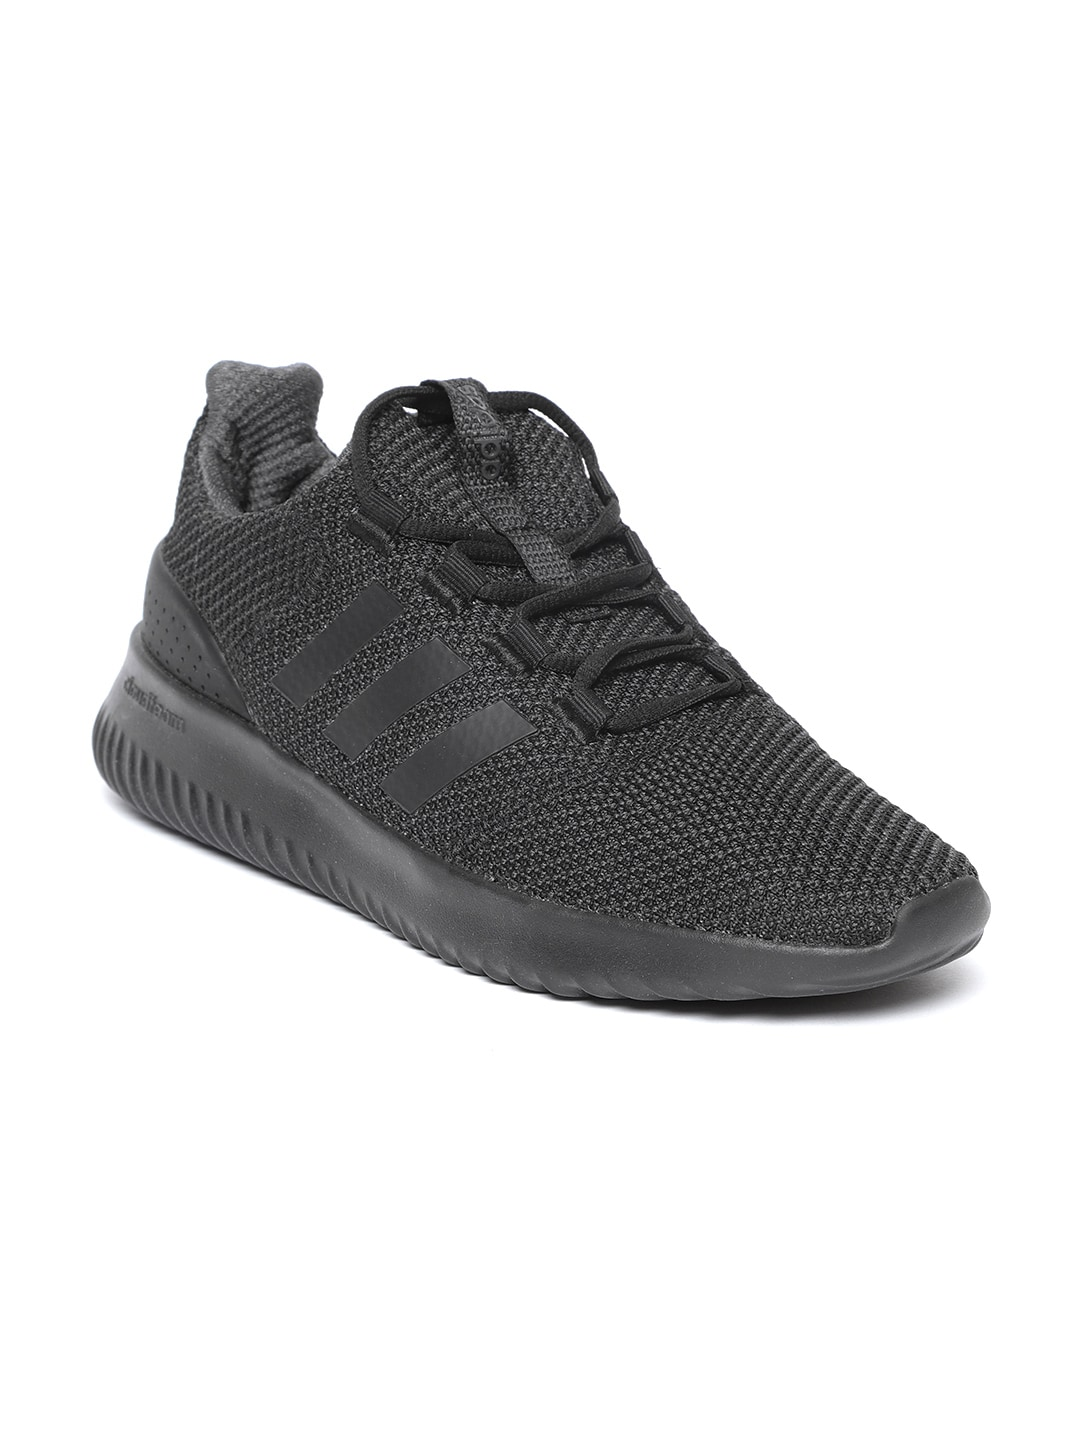 5e07c0da78a Adidas Sweatshirts Casual Shoes - Buy Adidas Sweatshirts Casual Shoes  online in India